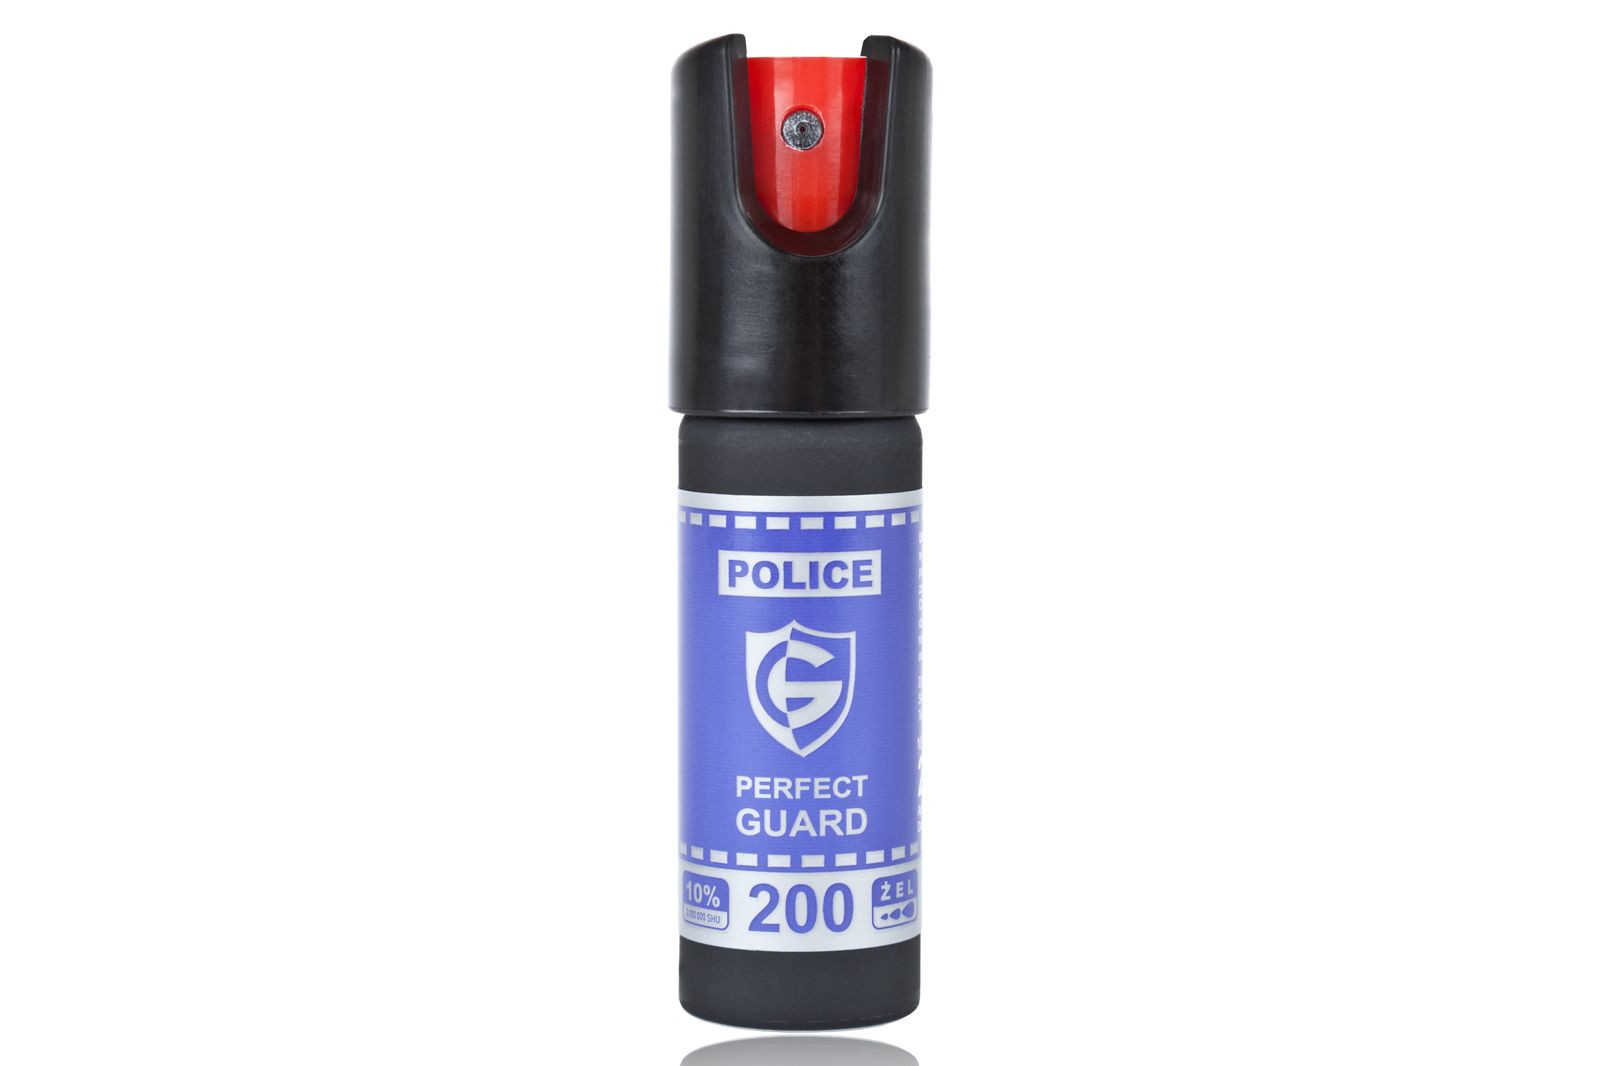 Gaz pieprzowy Police Perfect Guard 200 - 20 ml. żel (PG.200)